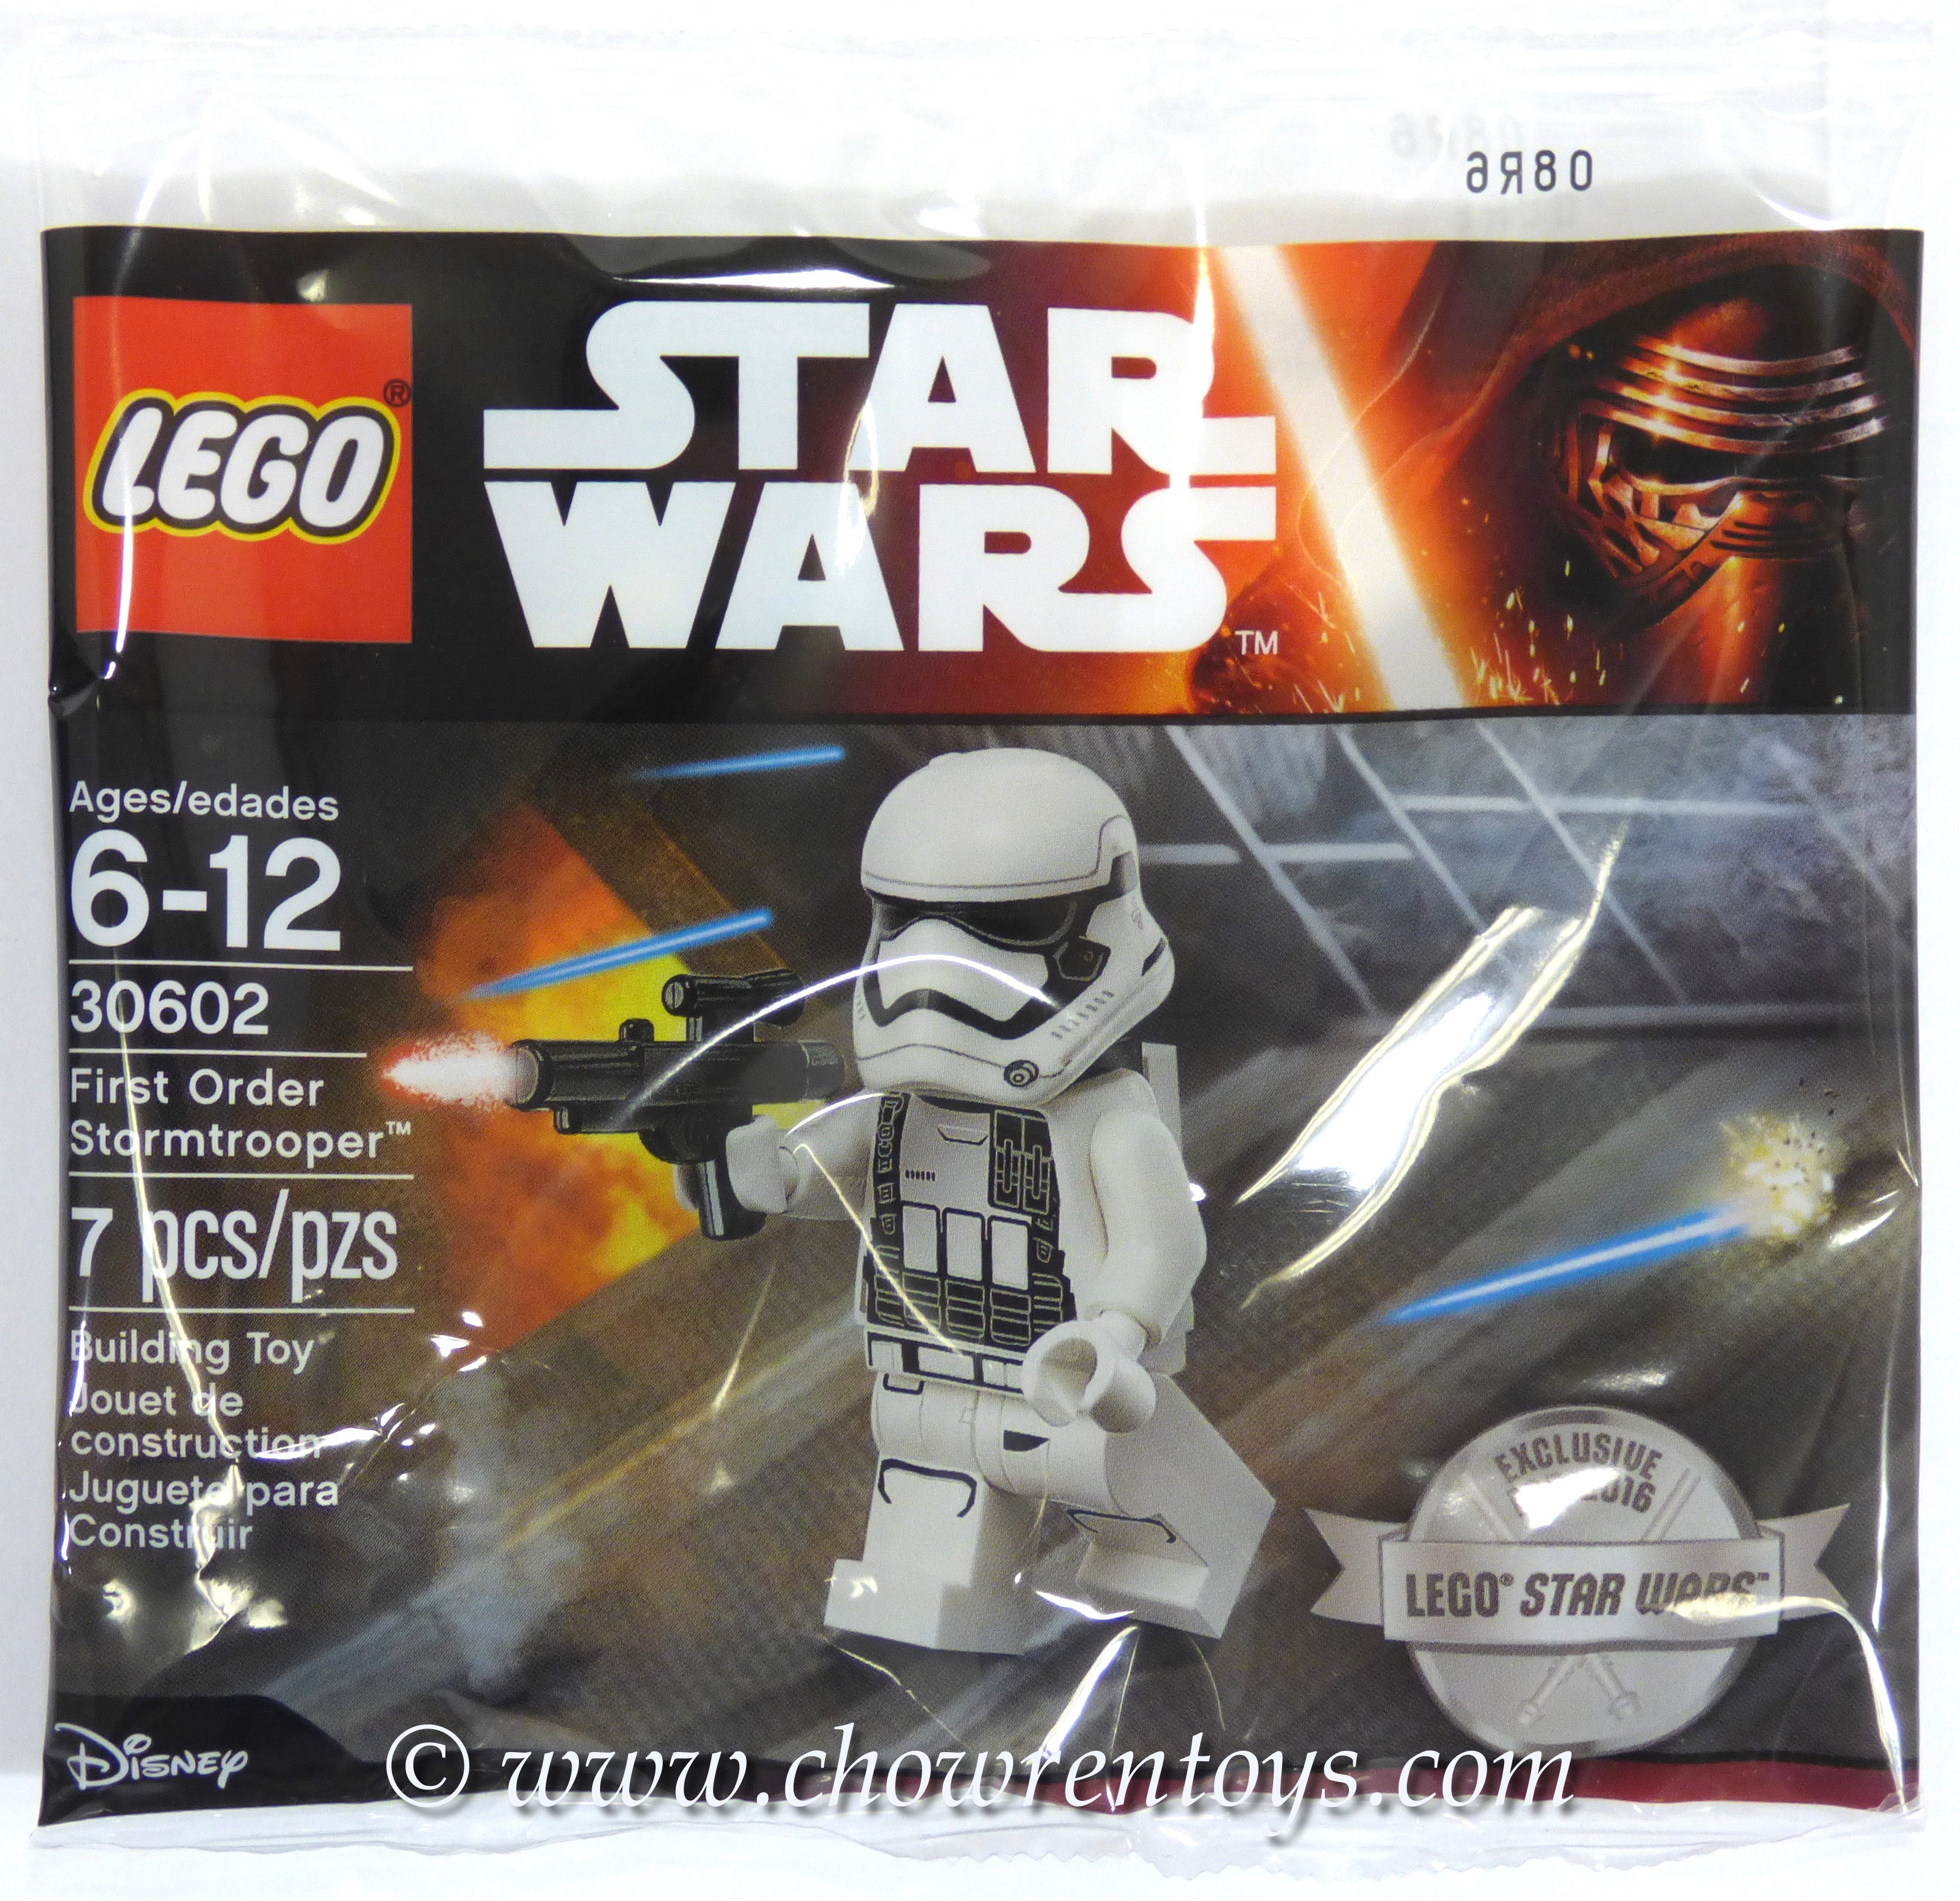 LEGO Star Wars Sets: 30602 First Order Stormtrooper NEW